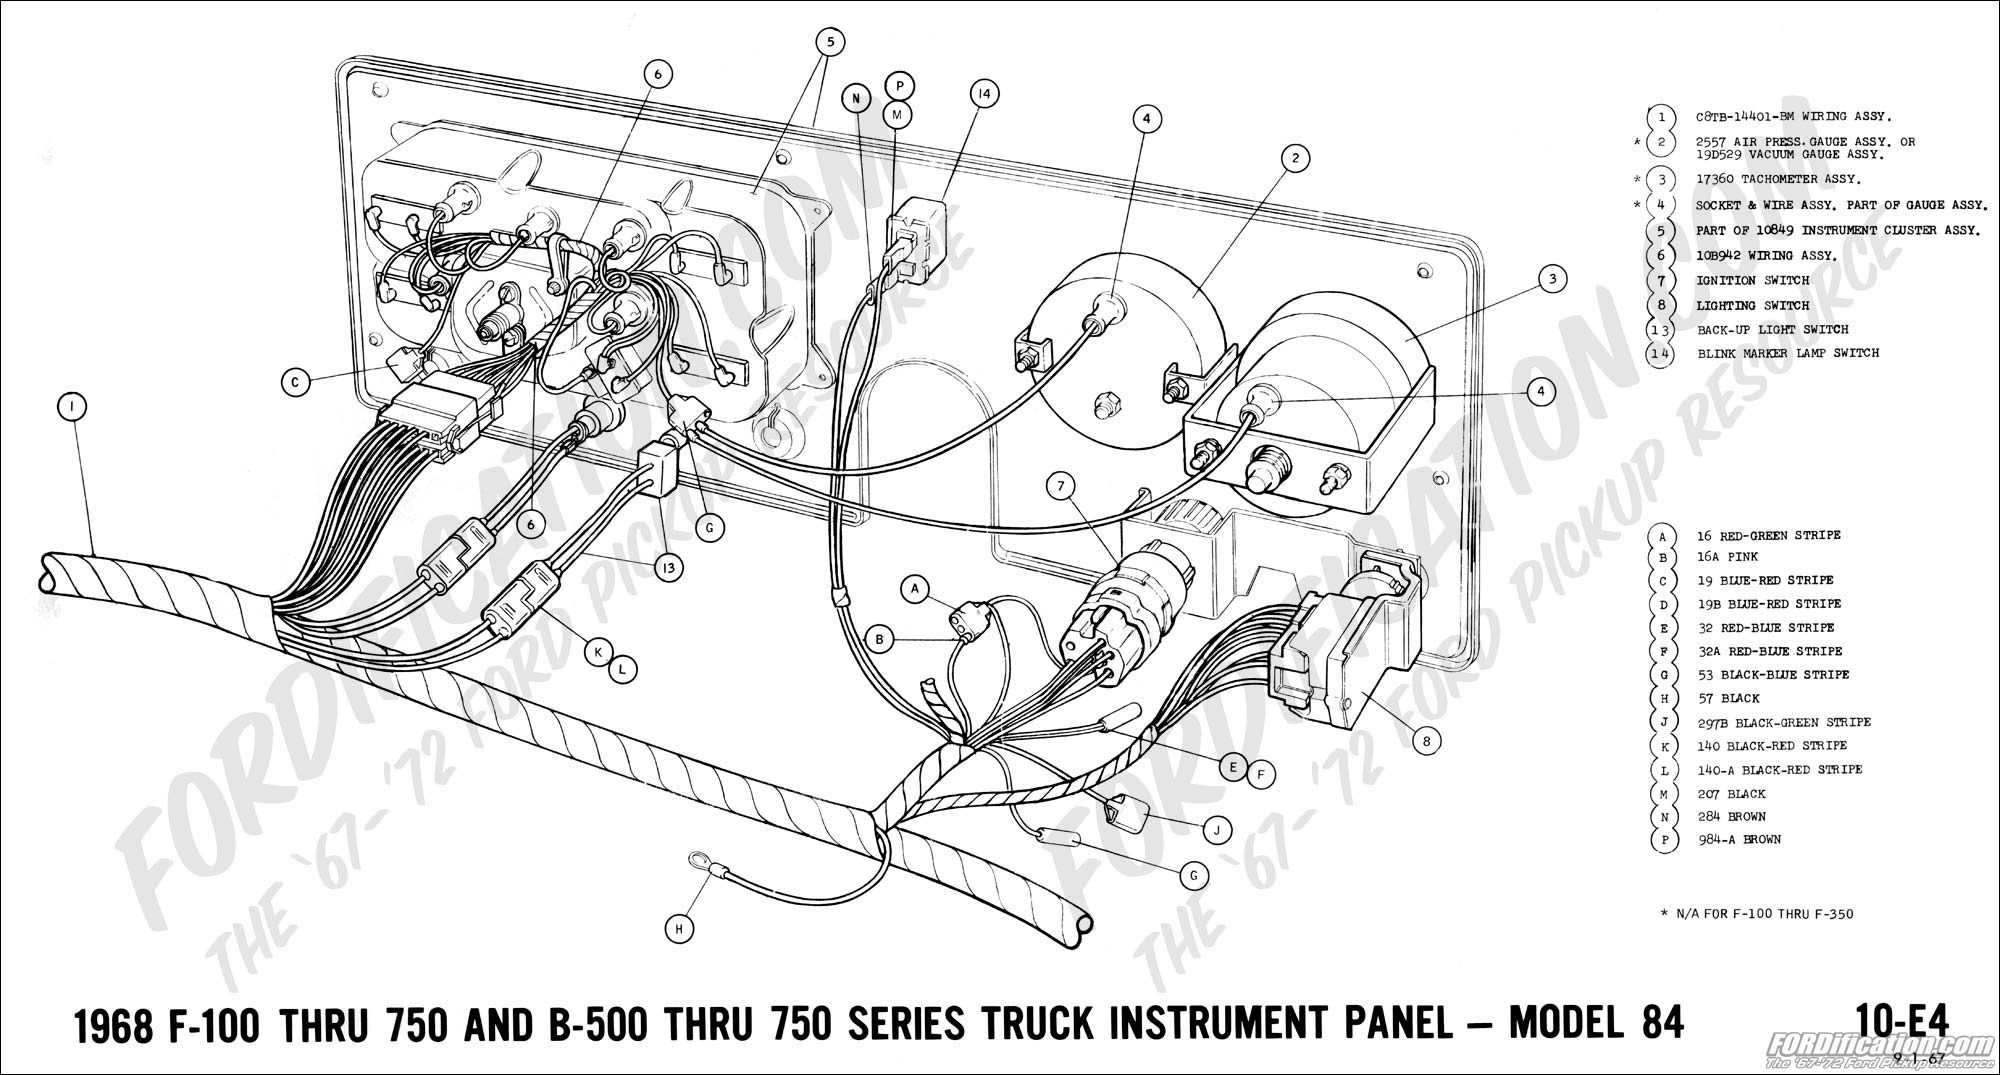 67 C10 Pickup Wiring Diagram Generator Library Gto Led Tail Lights Dakota Digital Moreover Wire Trailer 1965 Chevy Truck Overdrive Get Free Image Voltage Regulator Circuit 4